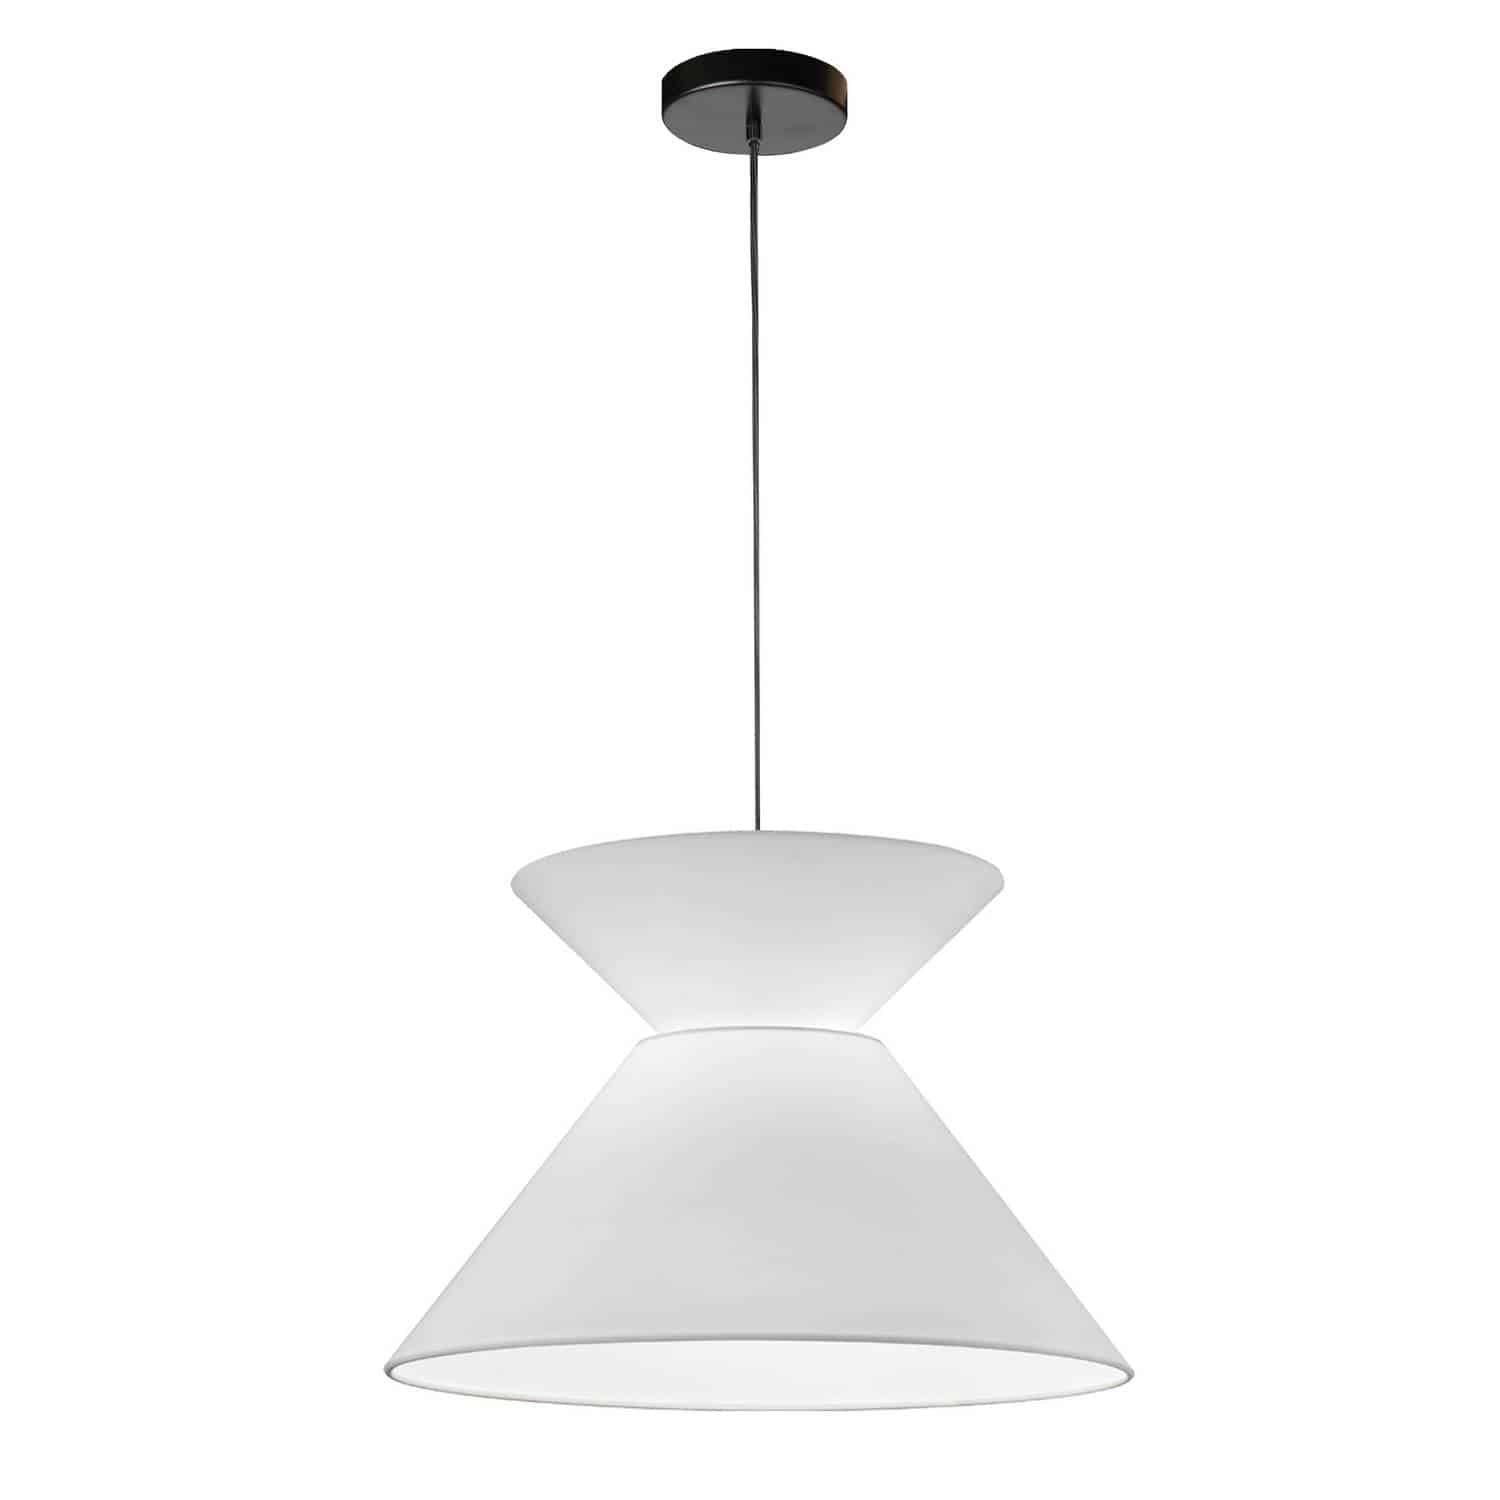 1 Light Patricia Pendant, Matte Black with White Shade